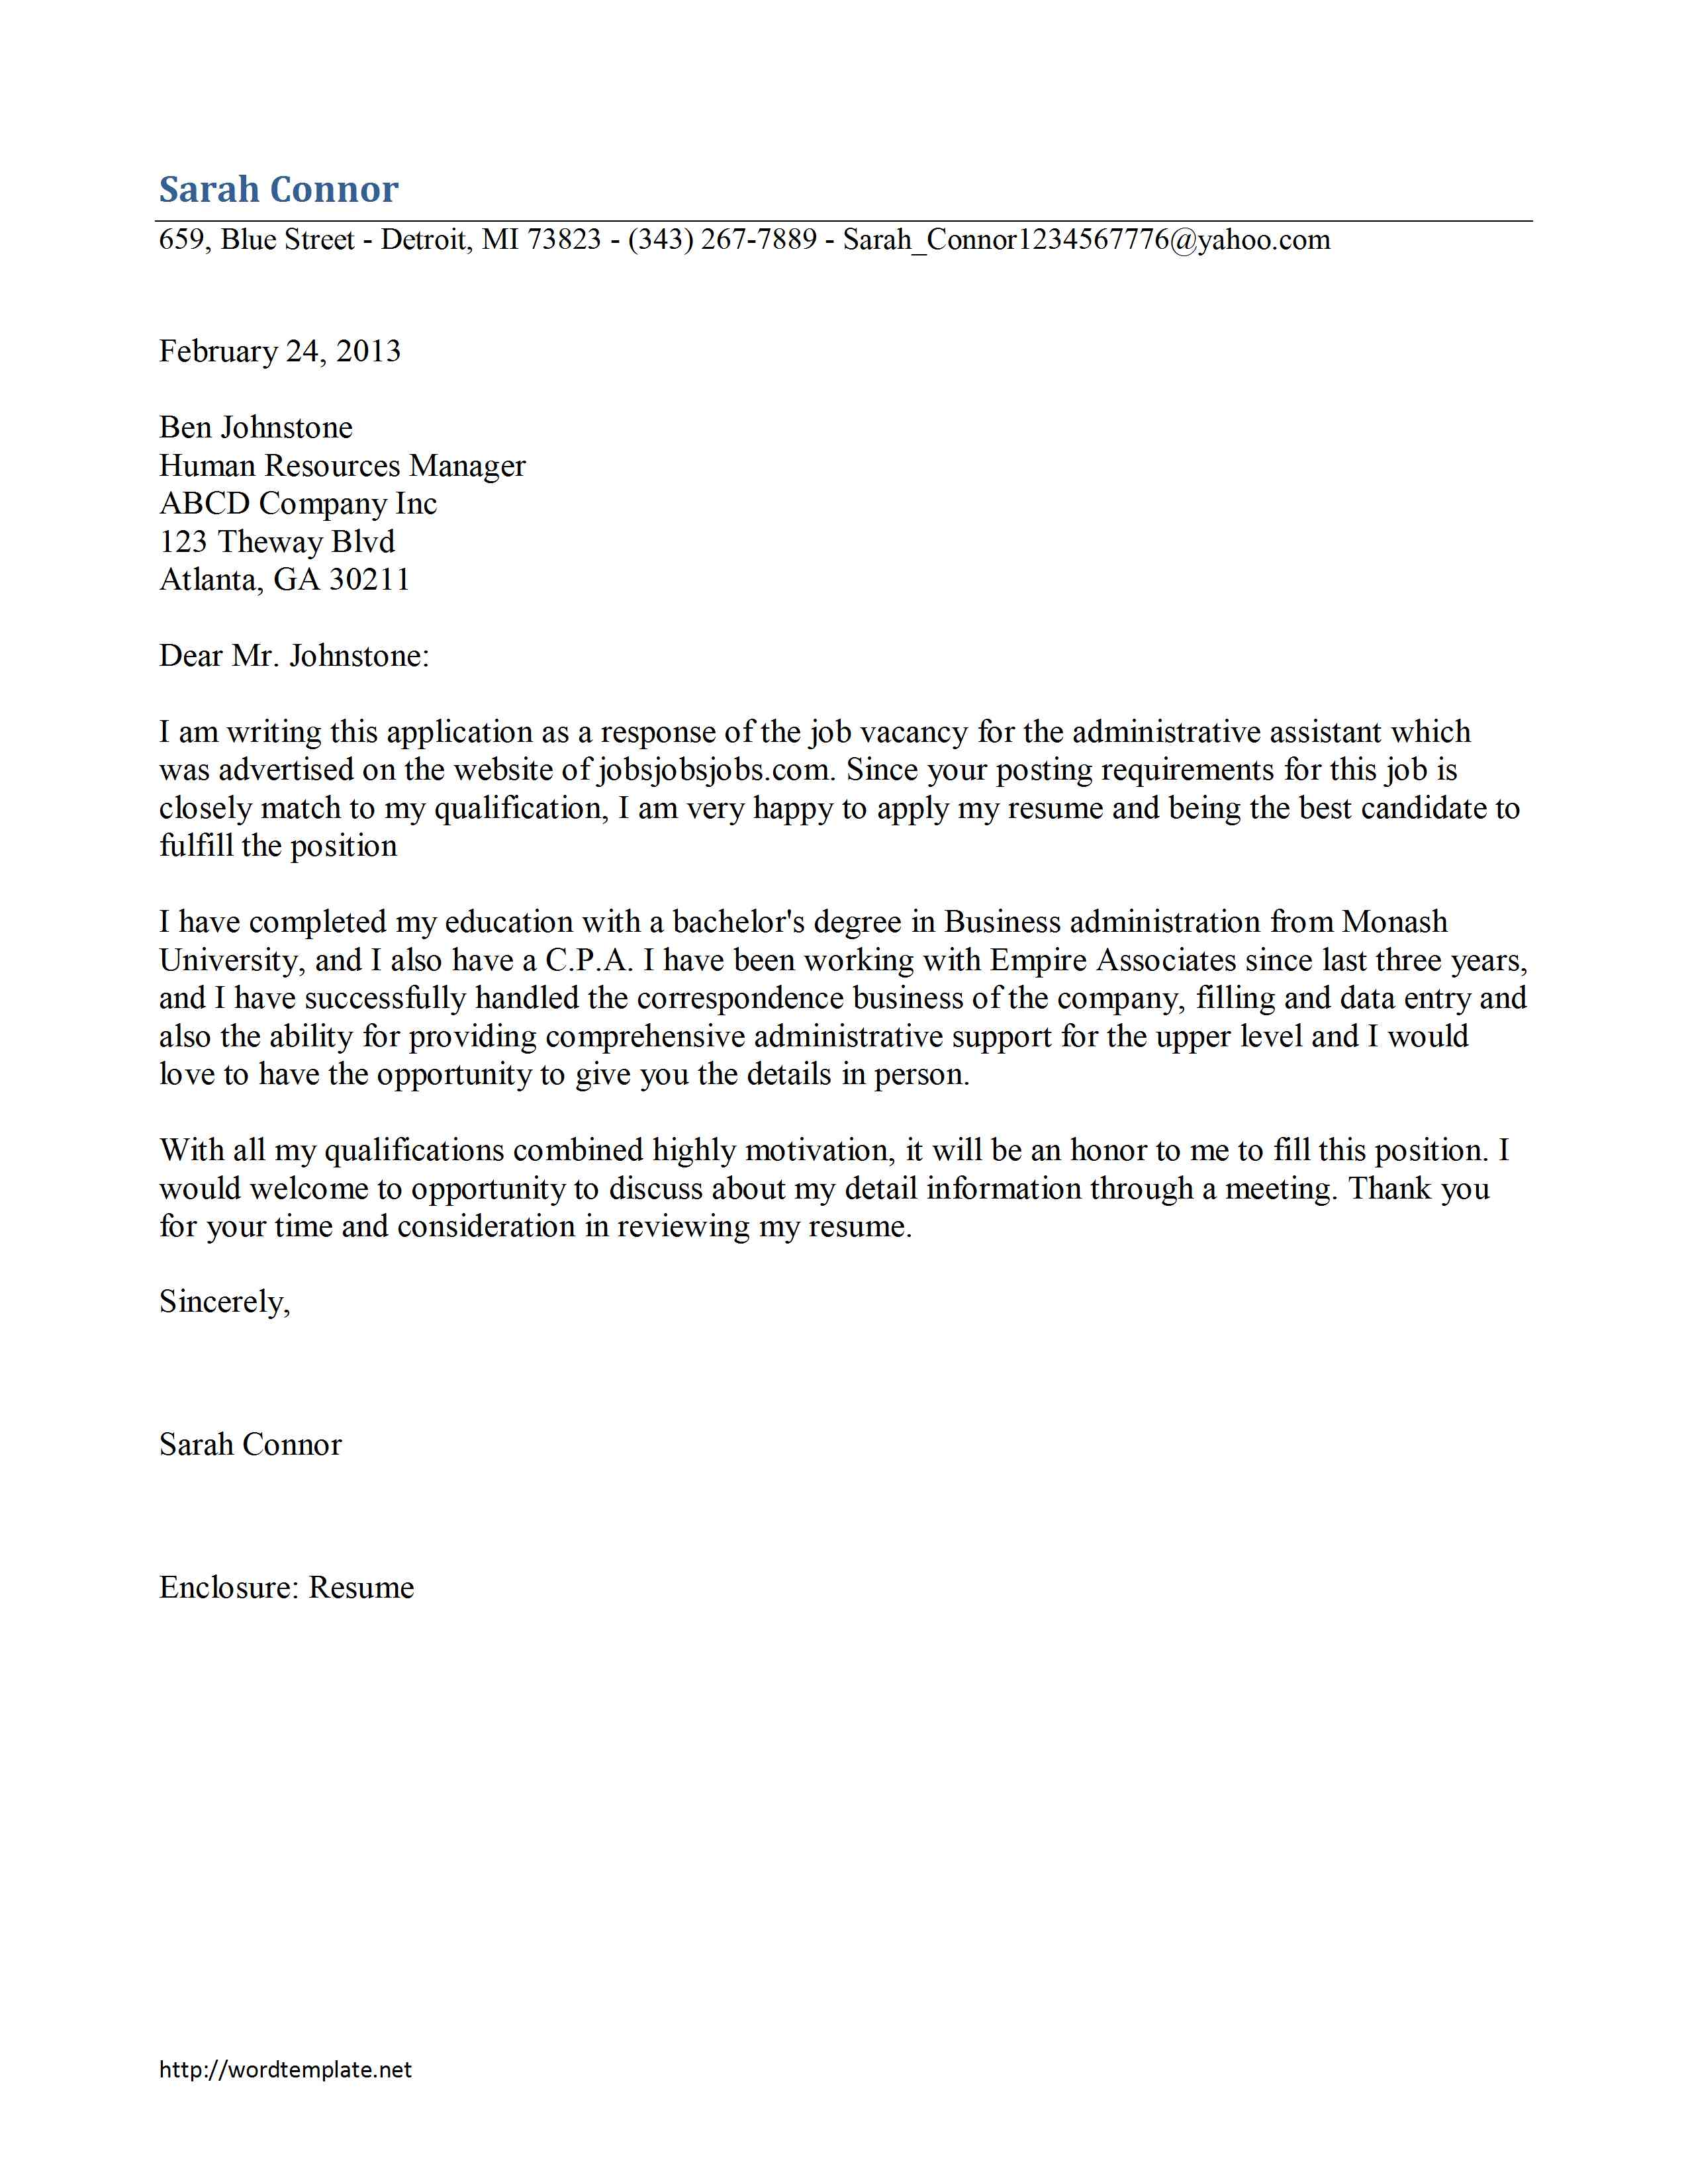 Cover Letter Template For Administrative Assistant – Executive Letter Template